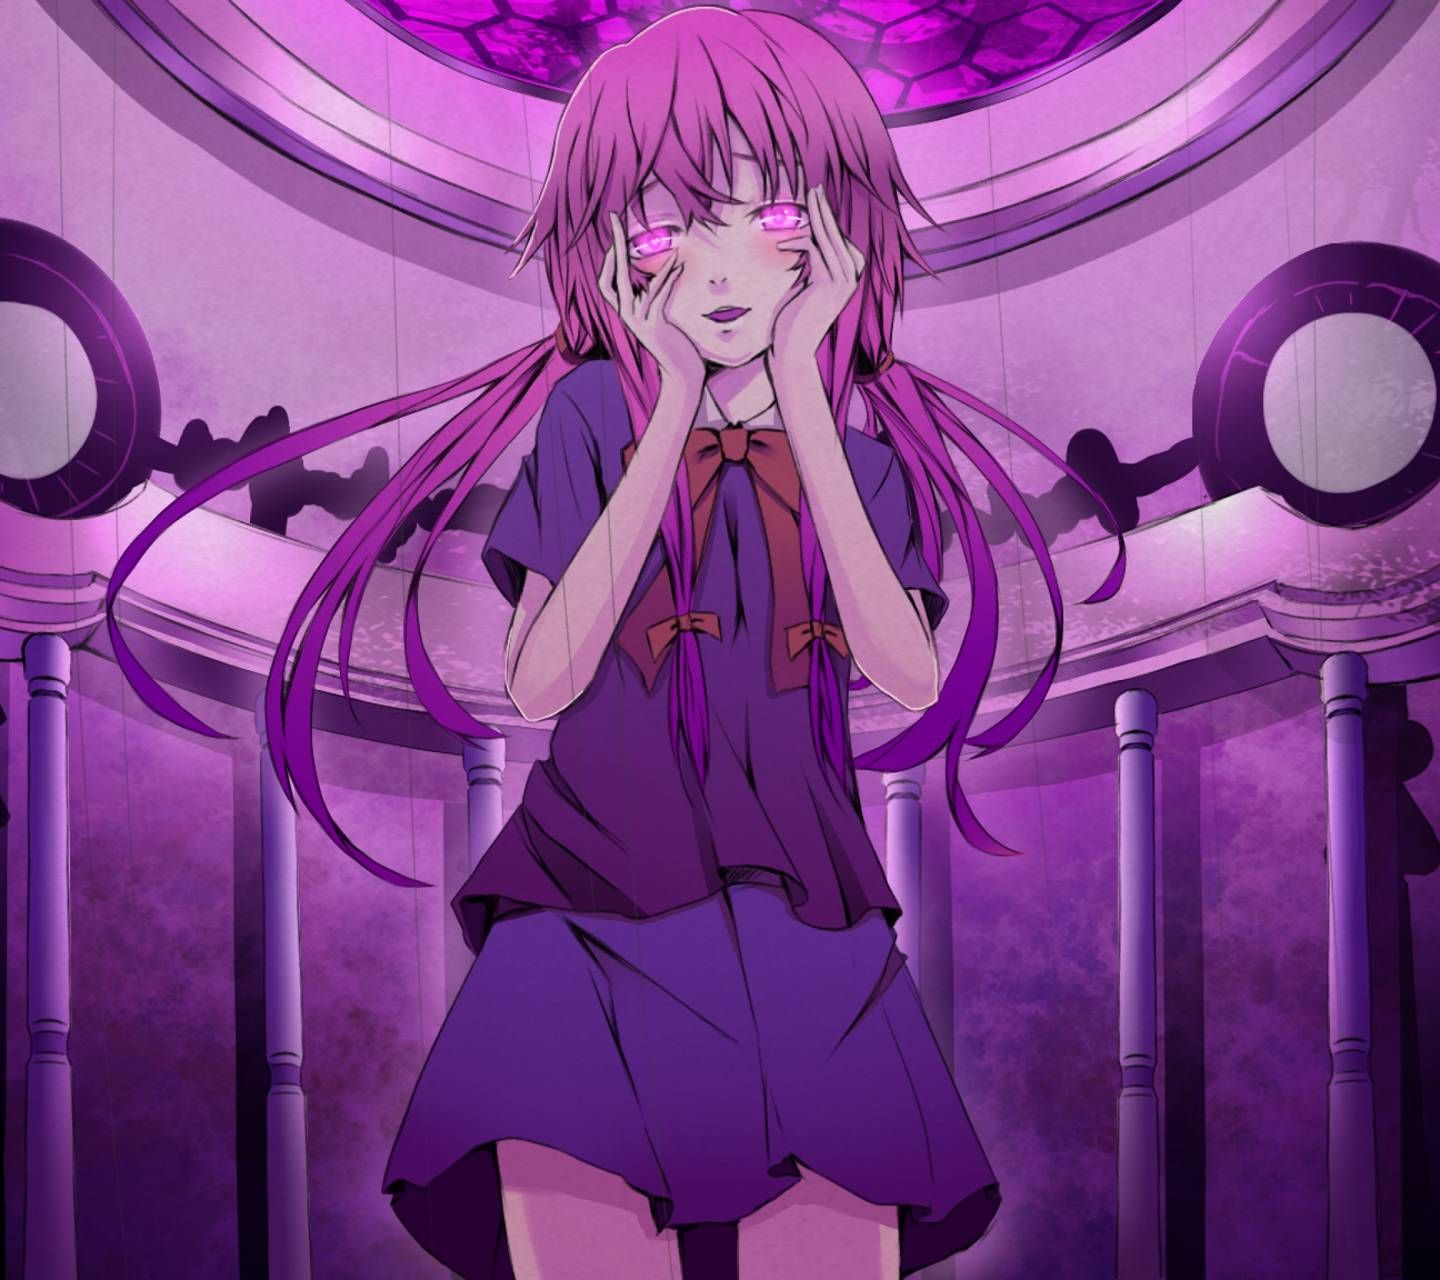 Download Yuno Gasai Wallpaper By Jk Mannen 3a Free On Zedge Now Browse Millions Of Popular Anime Wallpapers And Ringtones On Yuno Gasai Mirai Nikki Yuno